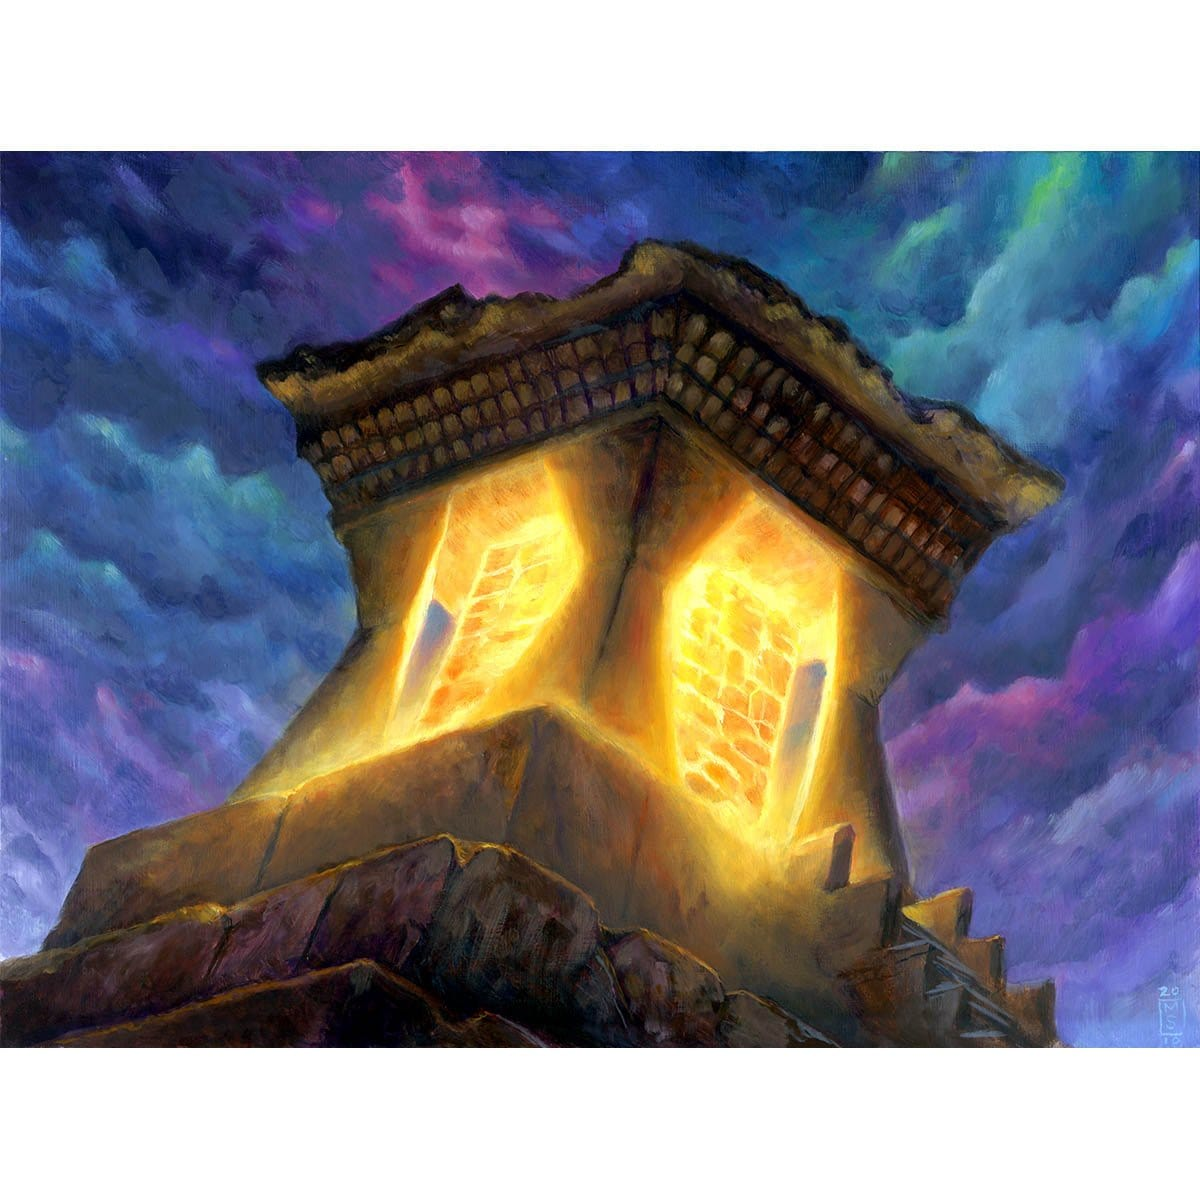 Mana Crypt Print - Print - Original Magic Art - Accessories for Magic the Gathering and other card games